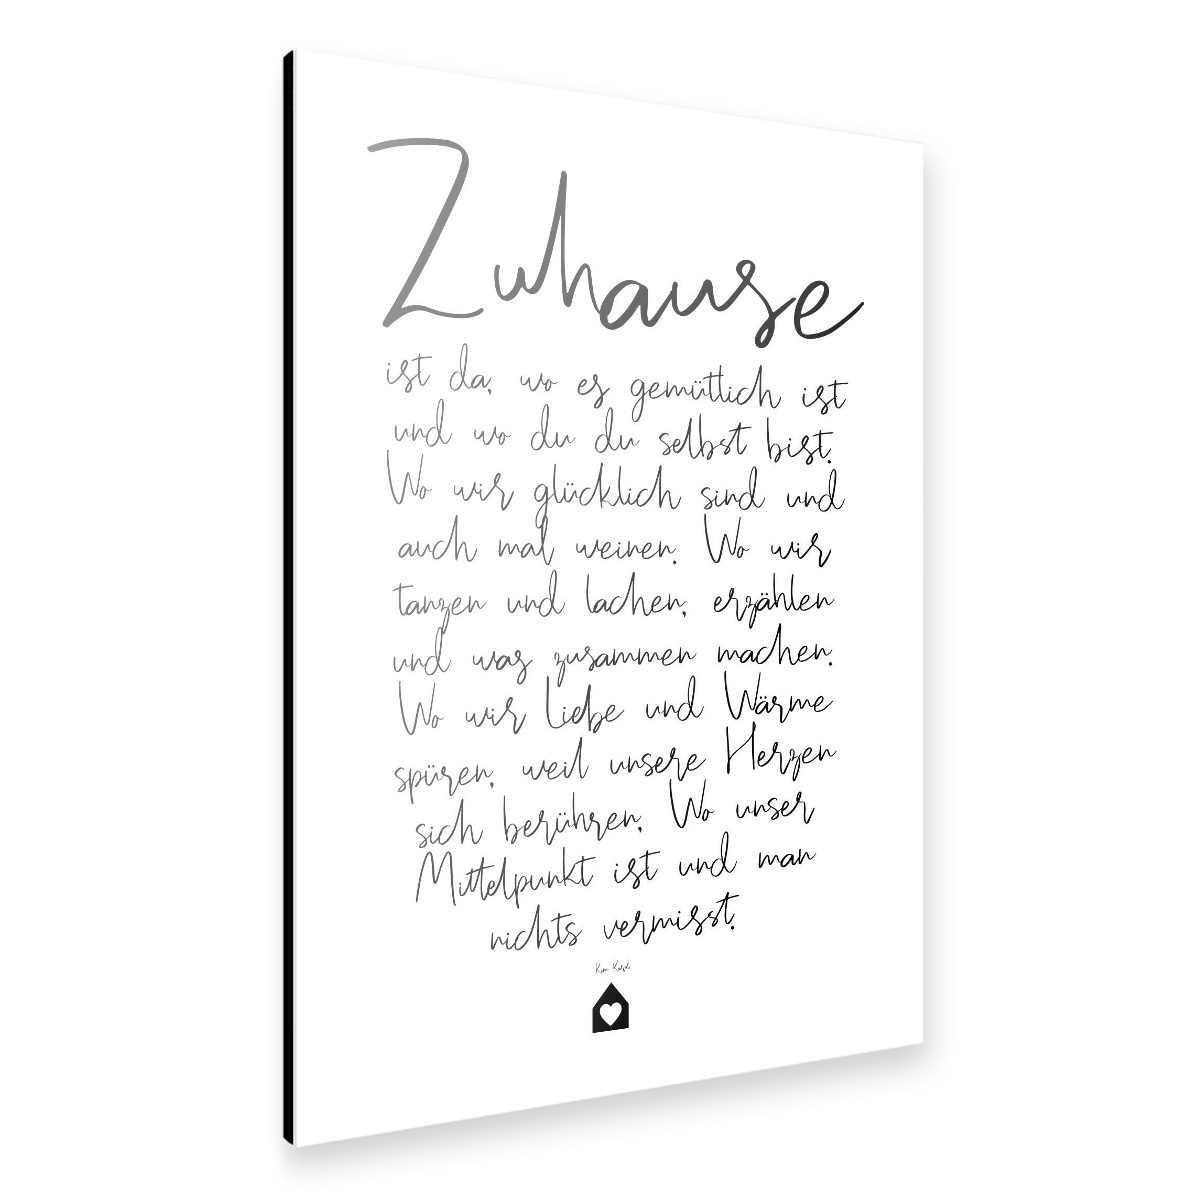 Purchase The Zuhause Ein Gedicht As A Alu At Artboxone